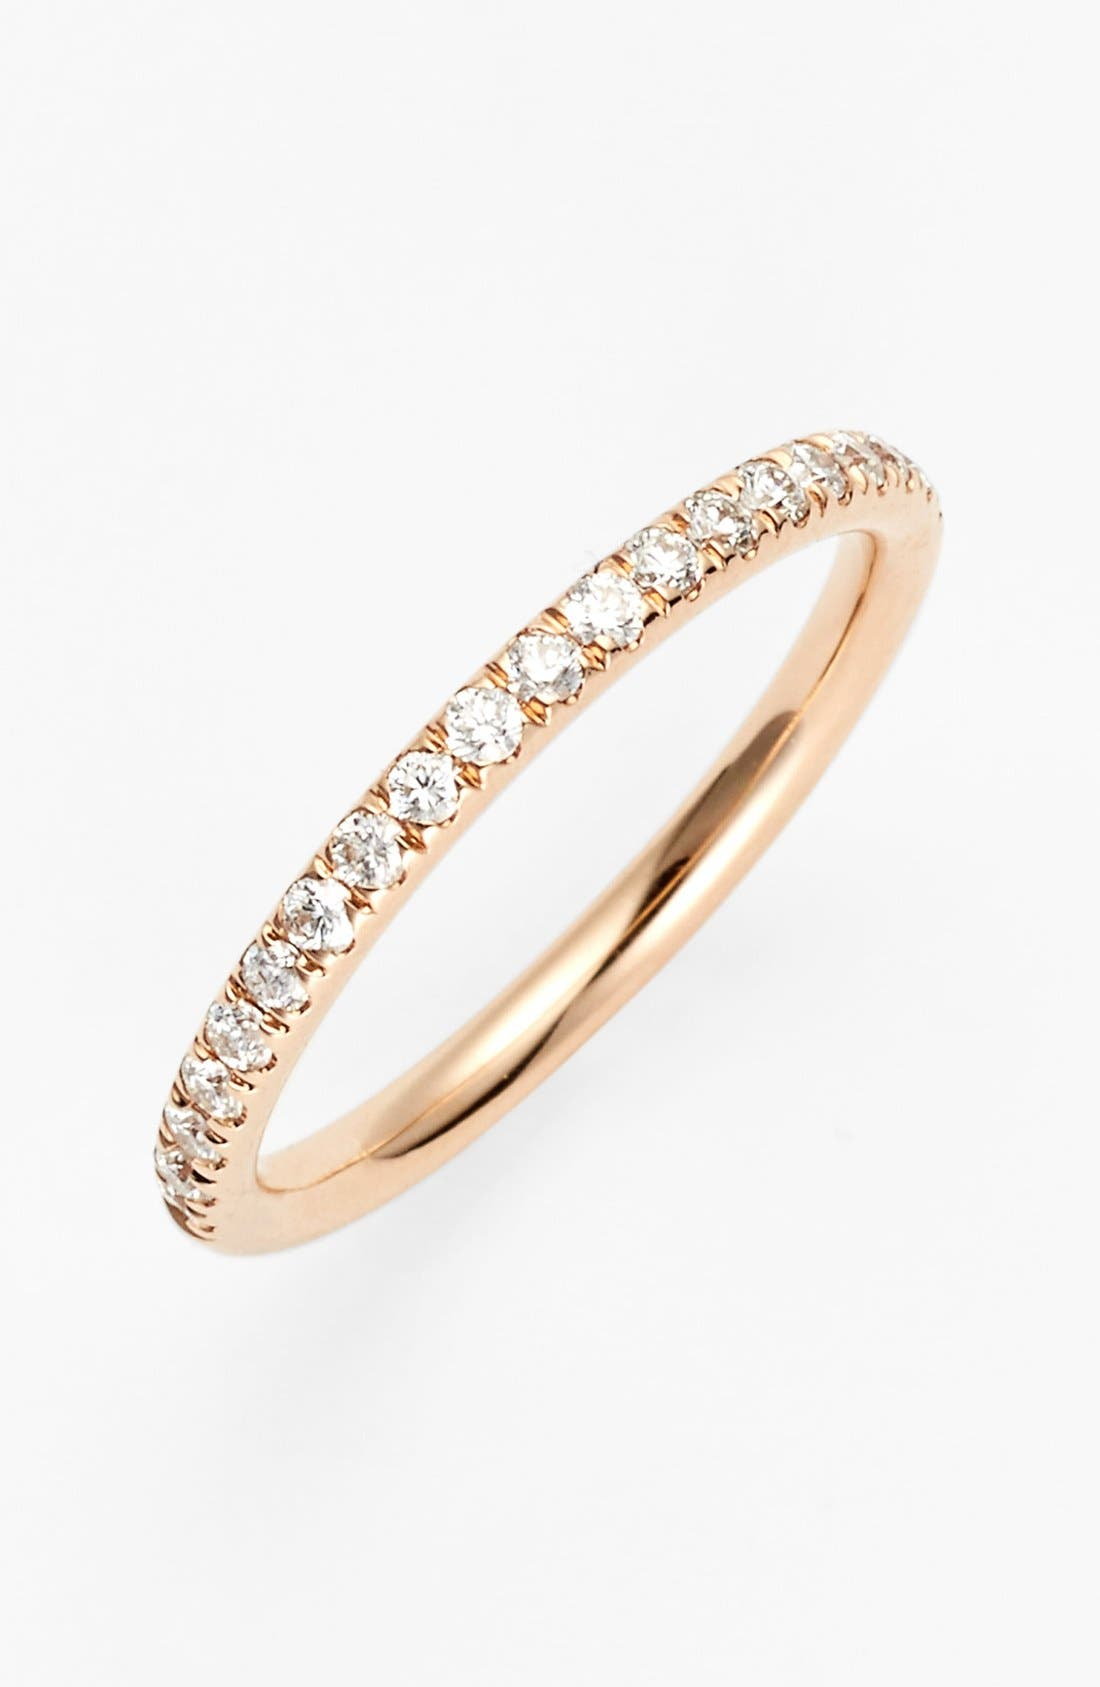 Alternate Image 1 Selected - Bony Levy 'Stackable' Large Straight Diamond Band Ring (Nordstrom Exclusive)